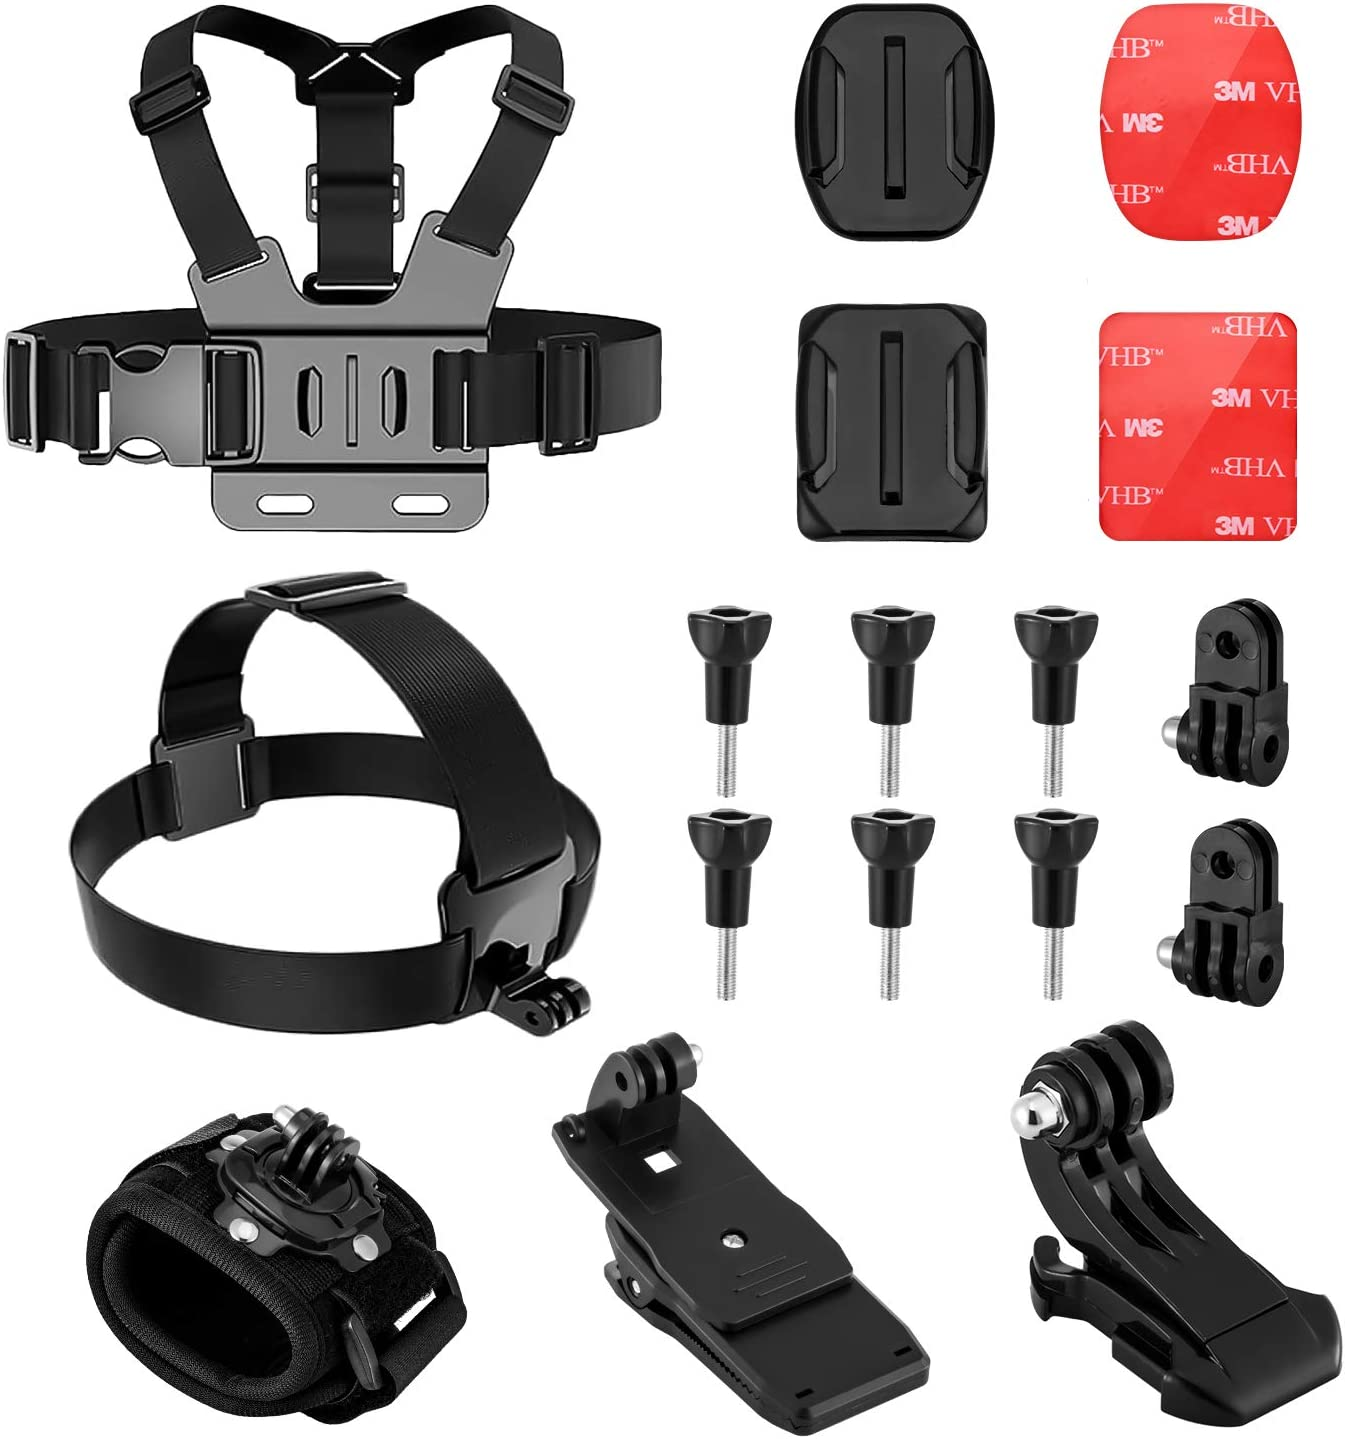 BOYISEN Action Camera Accessories kit for Gopro, Xiaomi Yi AKAS Apeman Sport Camera with Head Strap Body Wrist Strap Backpack Clip Mount and Helmet Mount